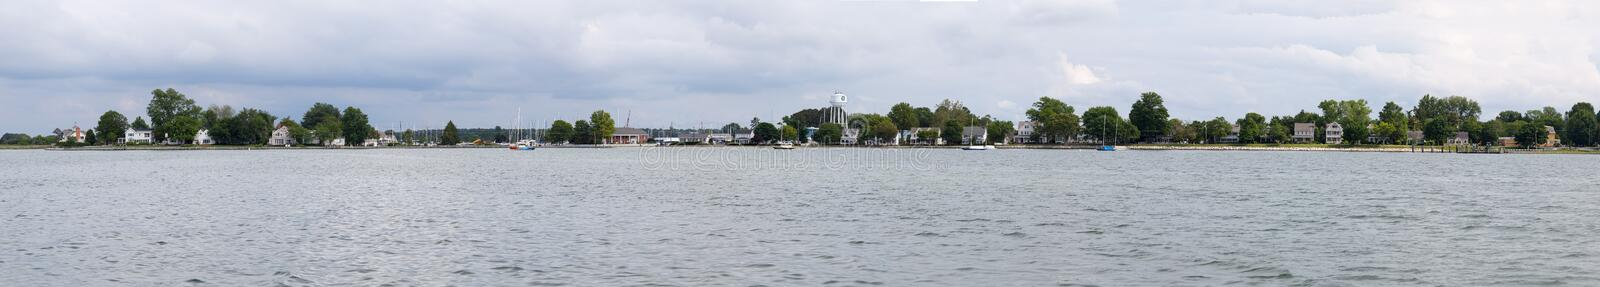 chesapeake Maryland Oxford panorama fotografia royalty free